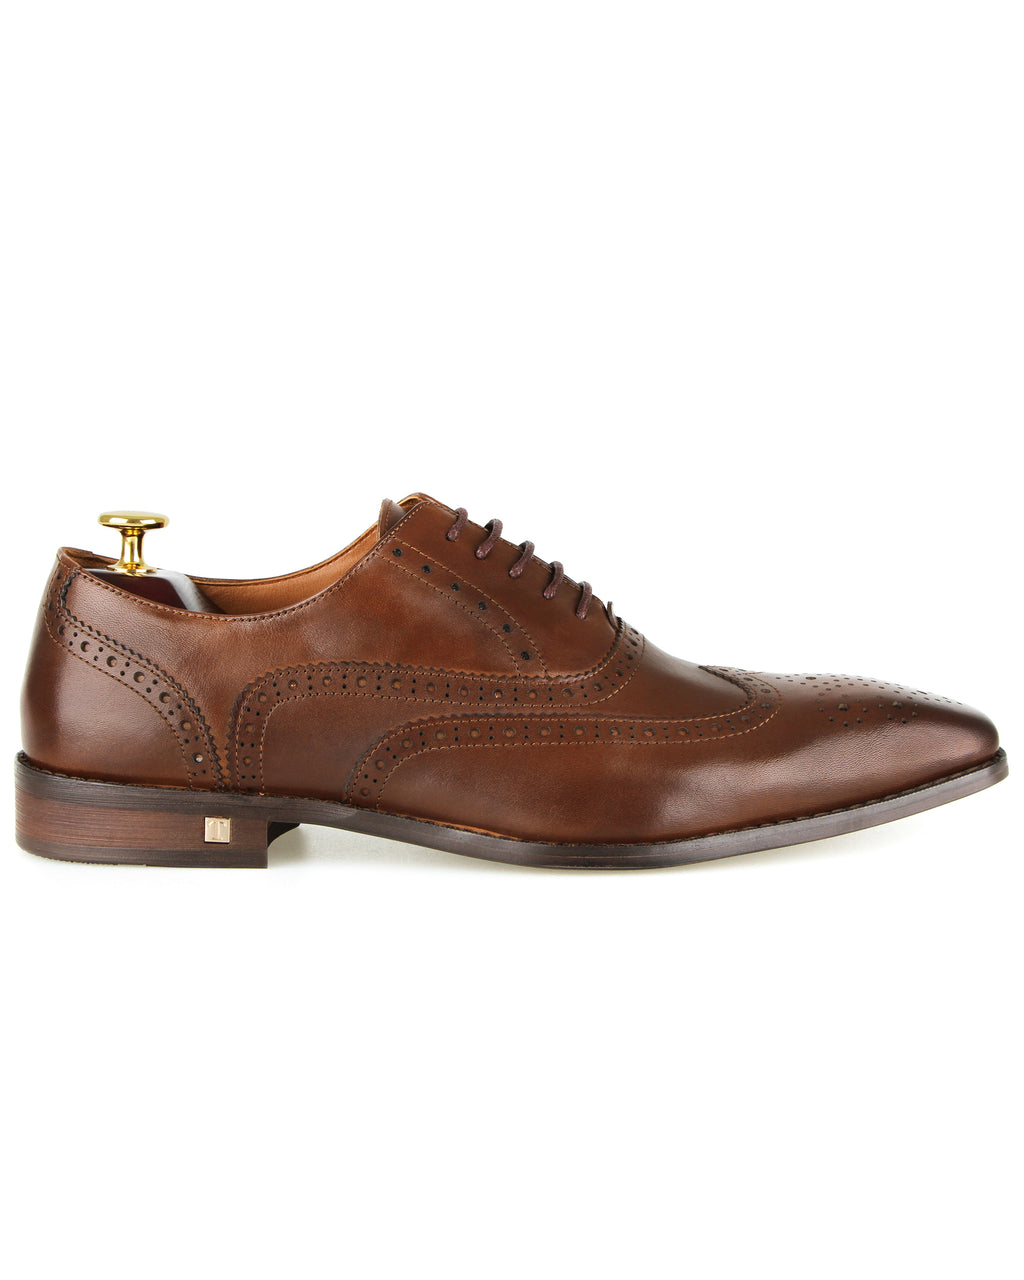 Tomaz F220 Formal Wingtip Oxford (Brown)